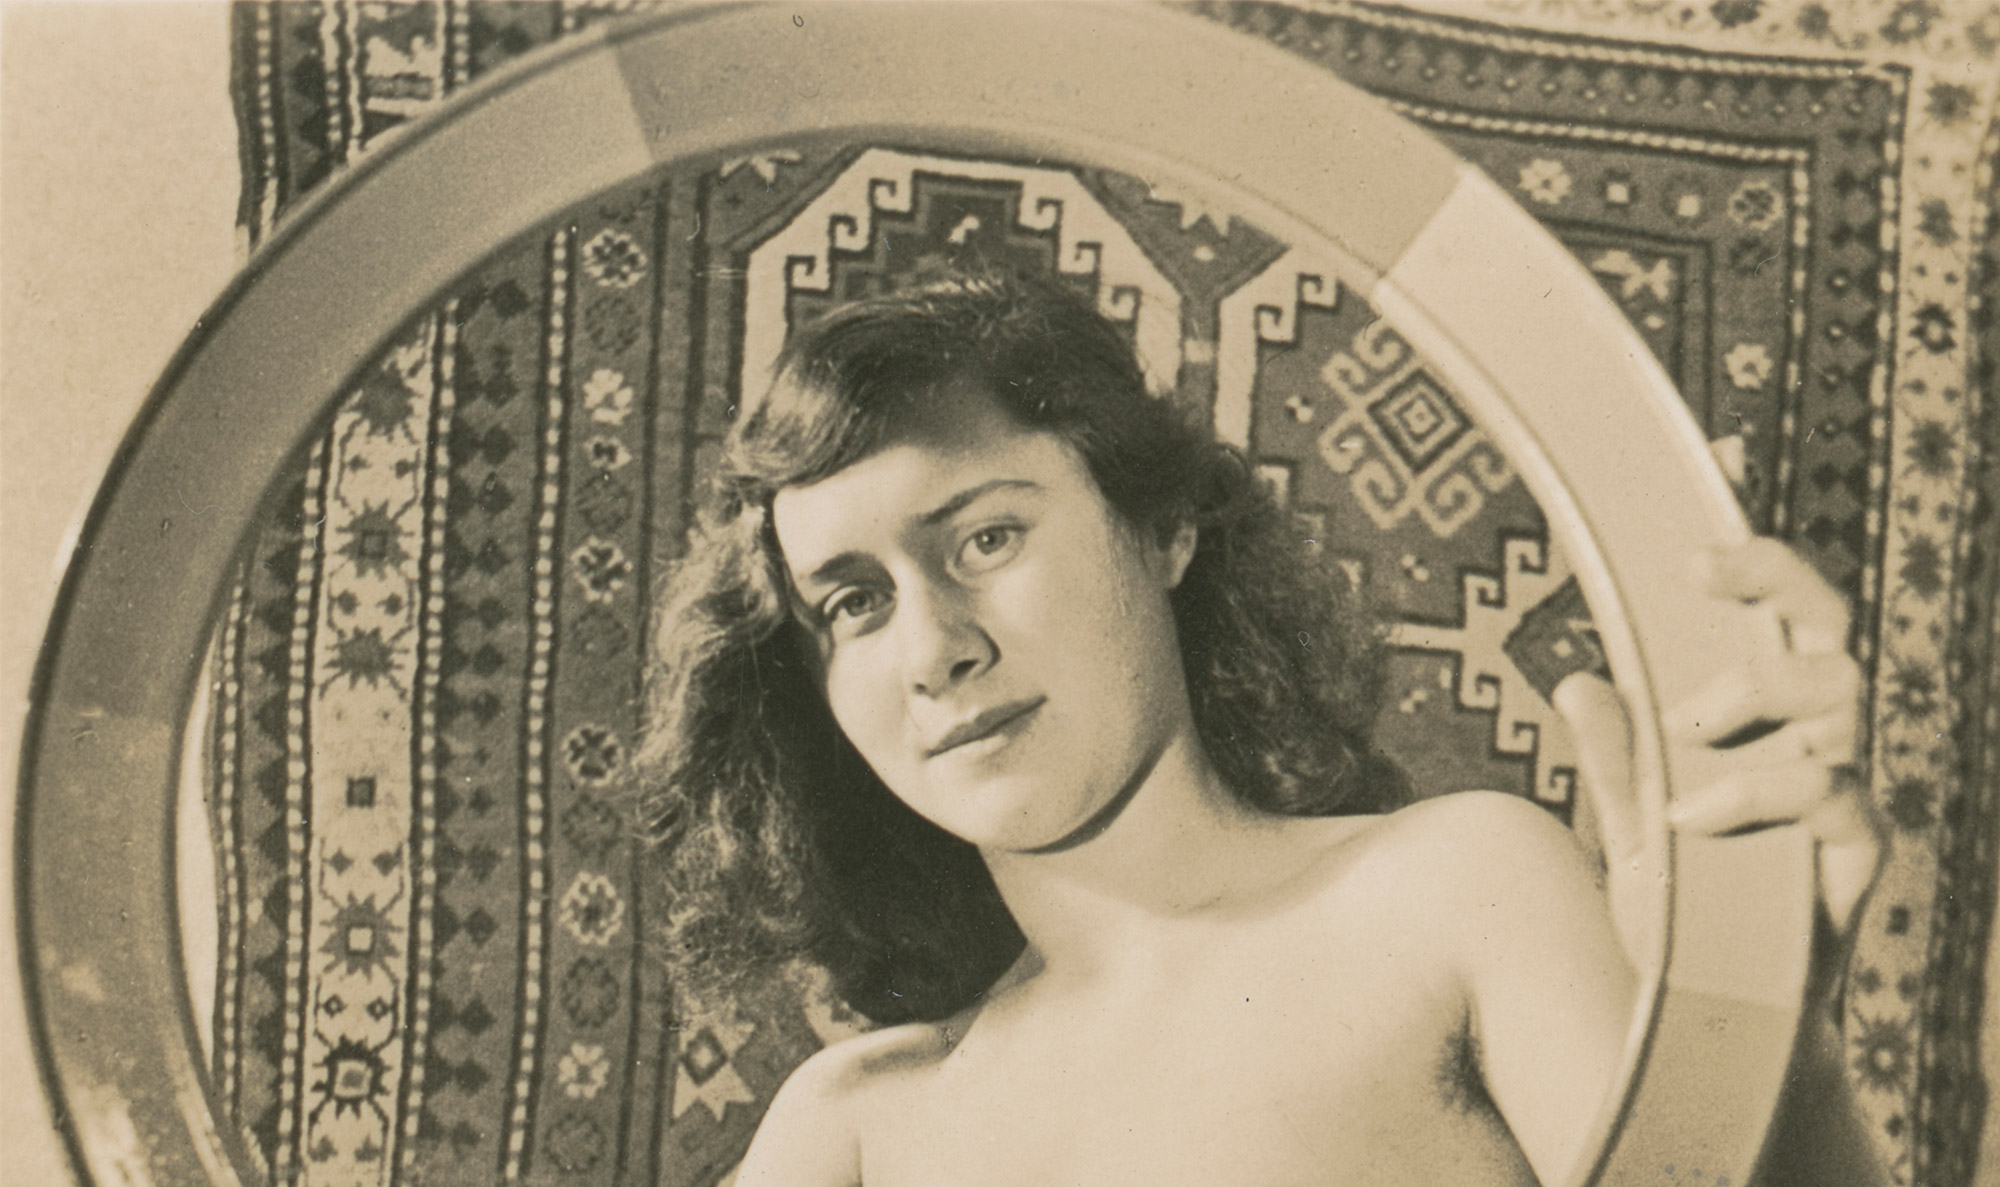 Nudes from the Weimar Republic: Guest Post by Stacey Doyle Ference